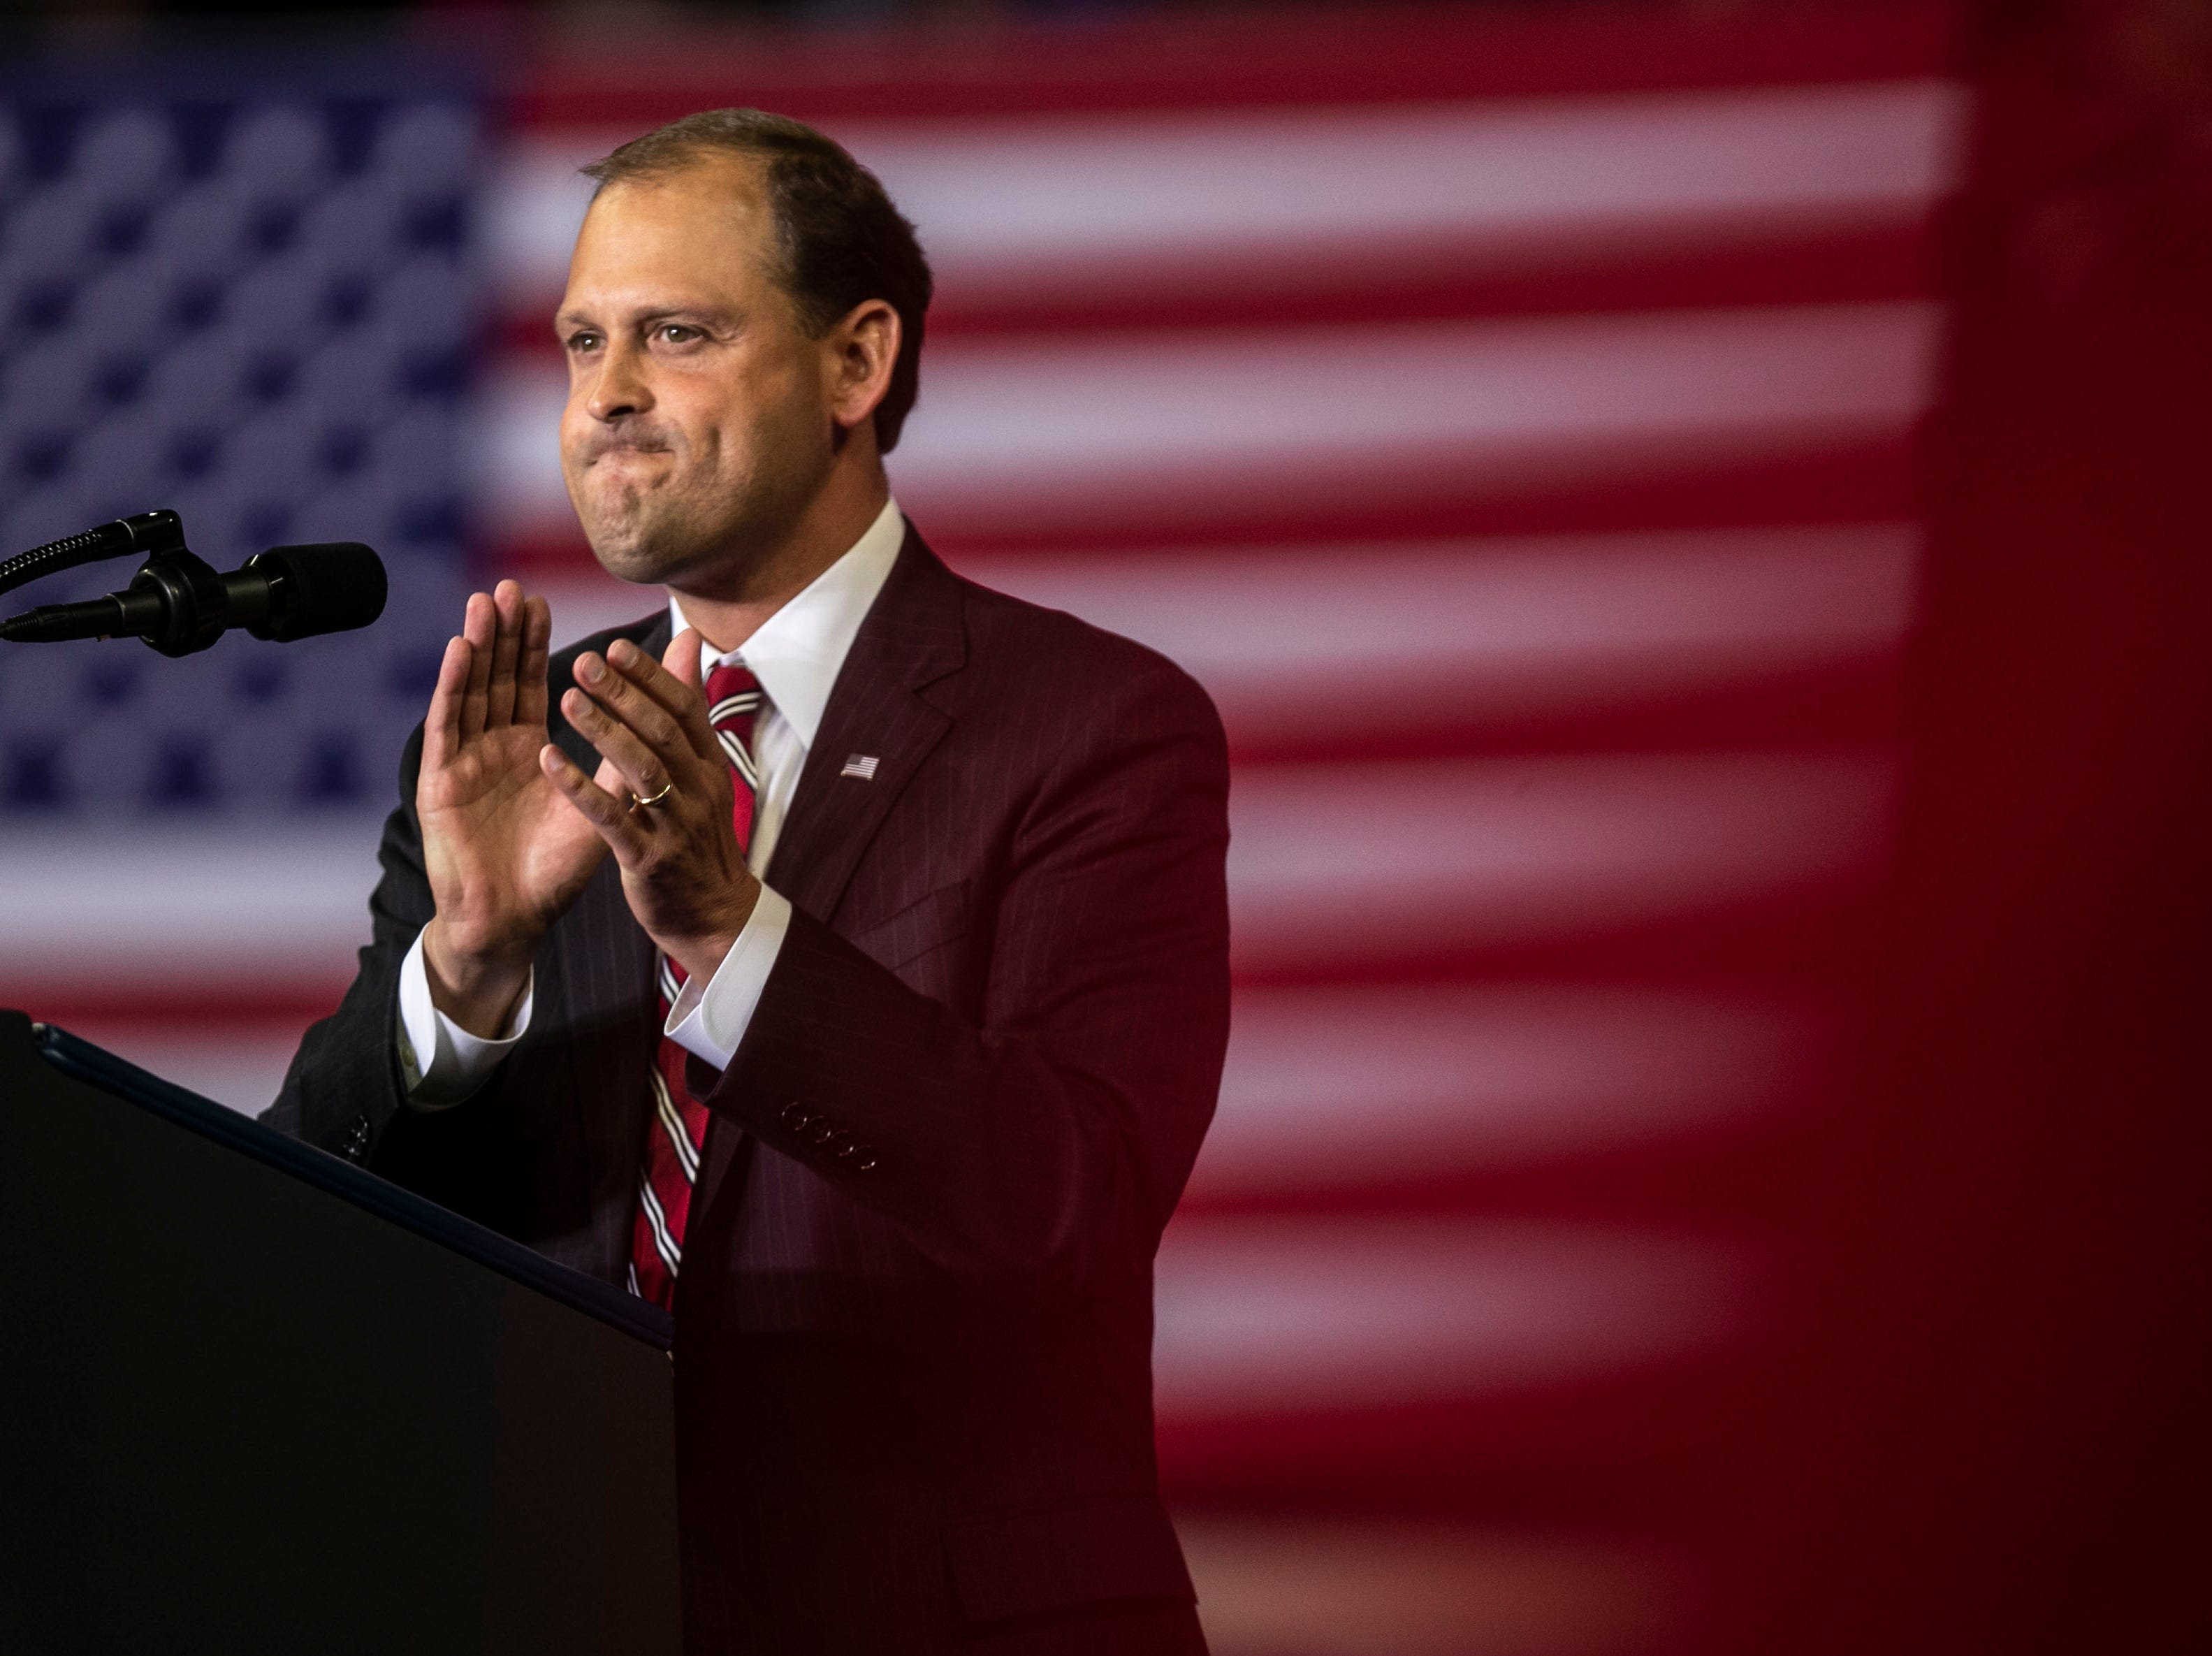 Andy Barr vowed to help President Donald Trump 'build the wall' Saturday night in Richmond while campaigning.